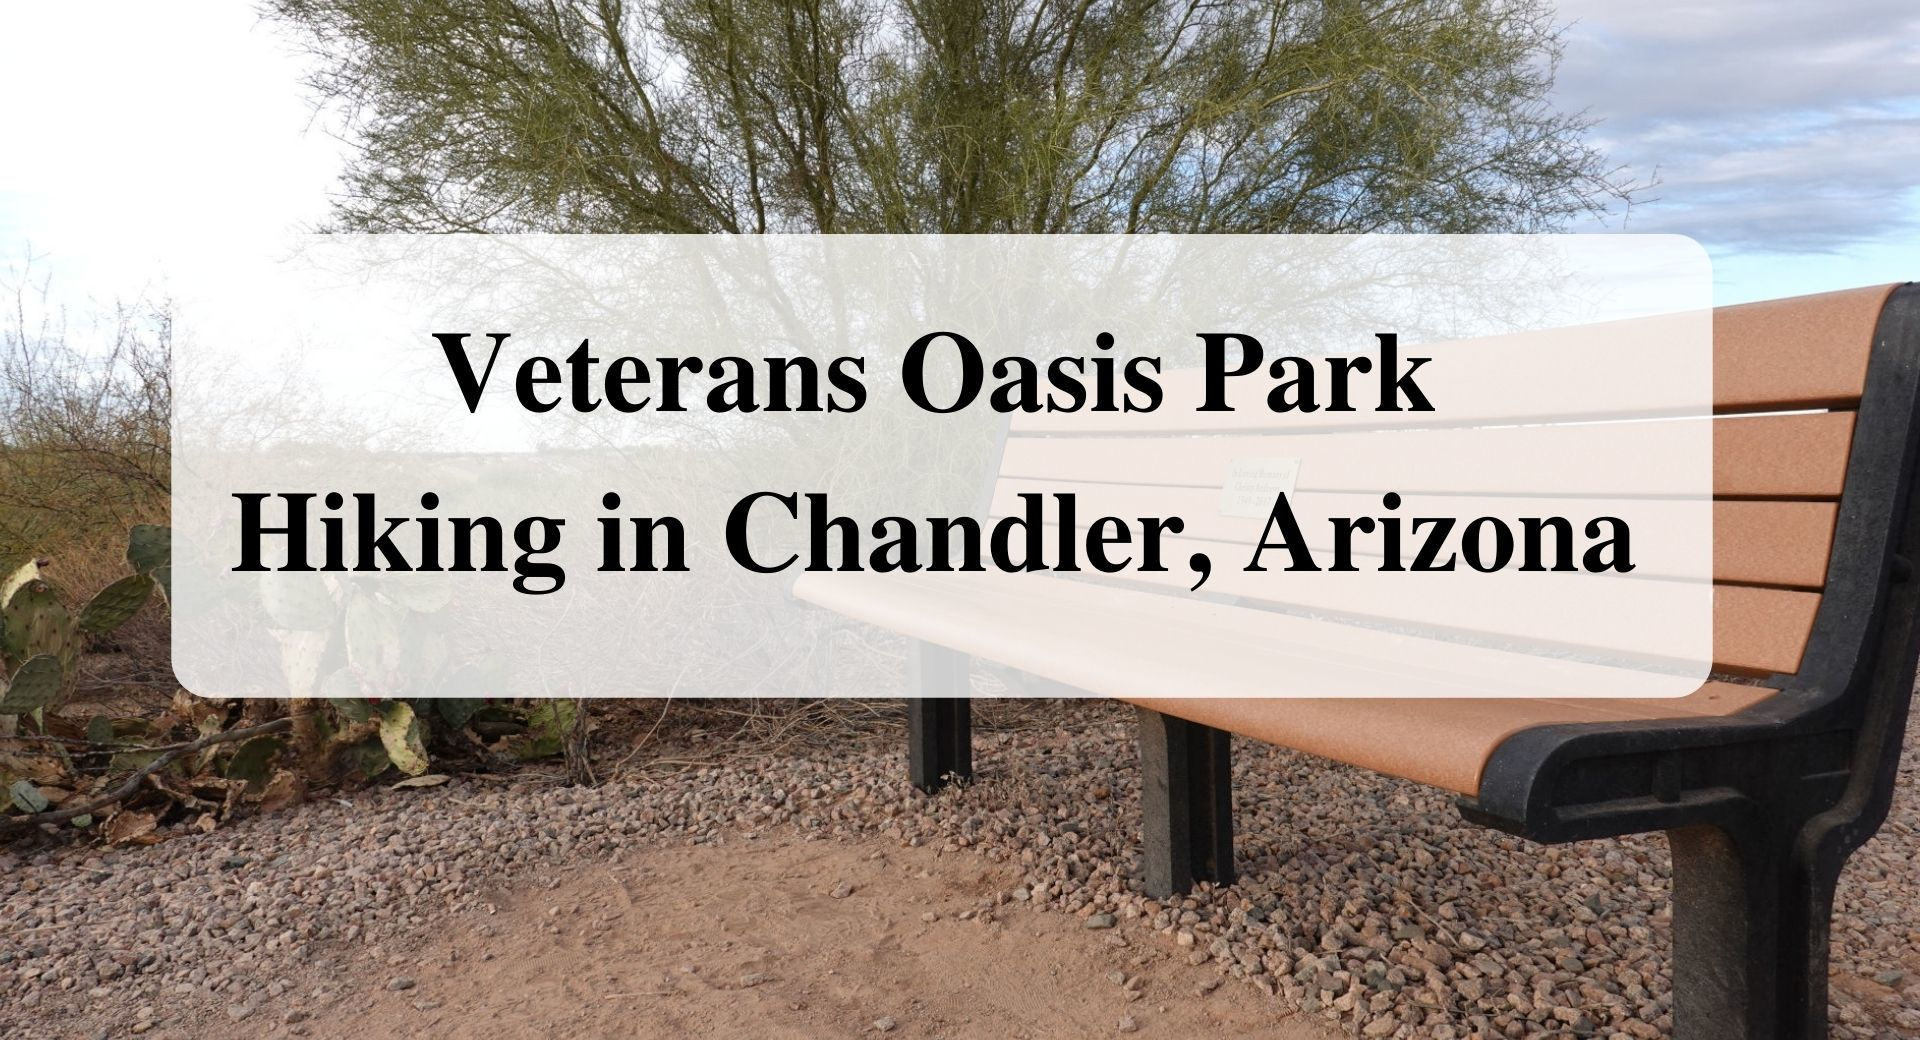 Veterans Oasis Park Hiking in Chandler Arizona